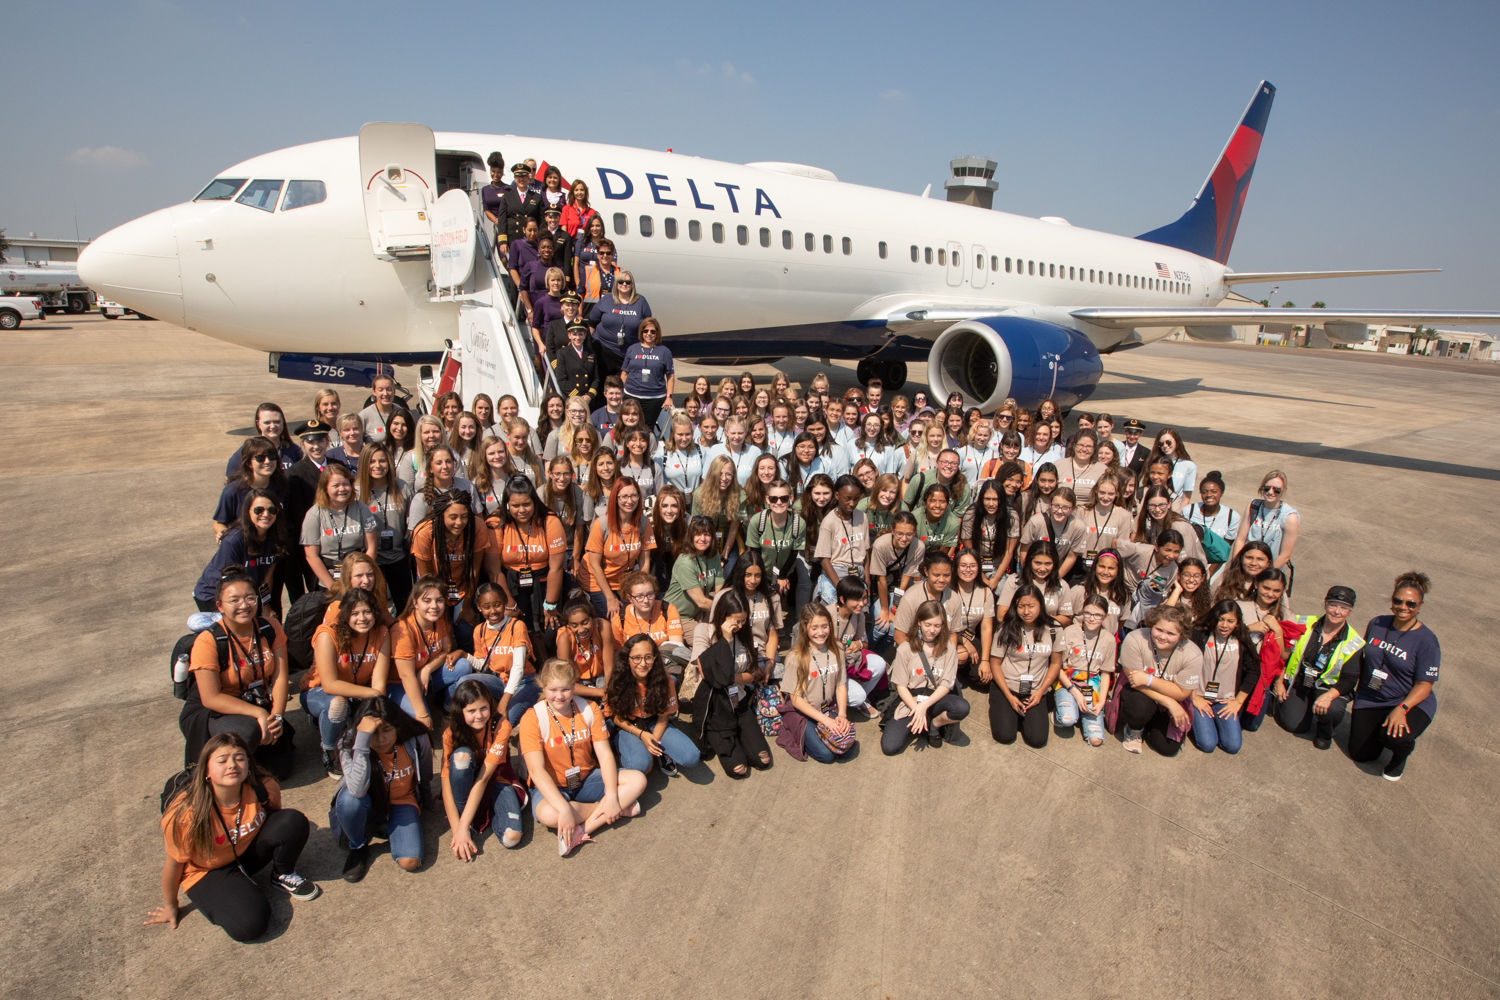 <p>The plane had an all-female pilot and flight crew, ramp agents, and gate agents on the ground, and women were in the control tower giving pilots instructions (Delta)</p>